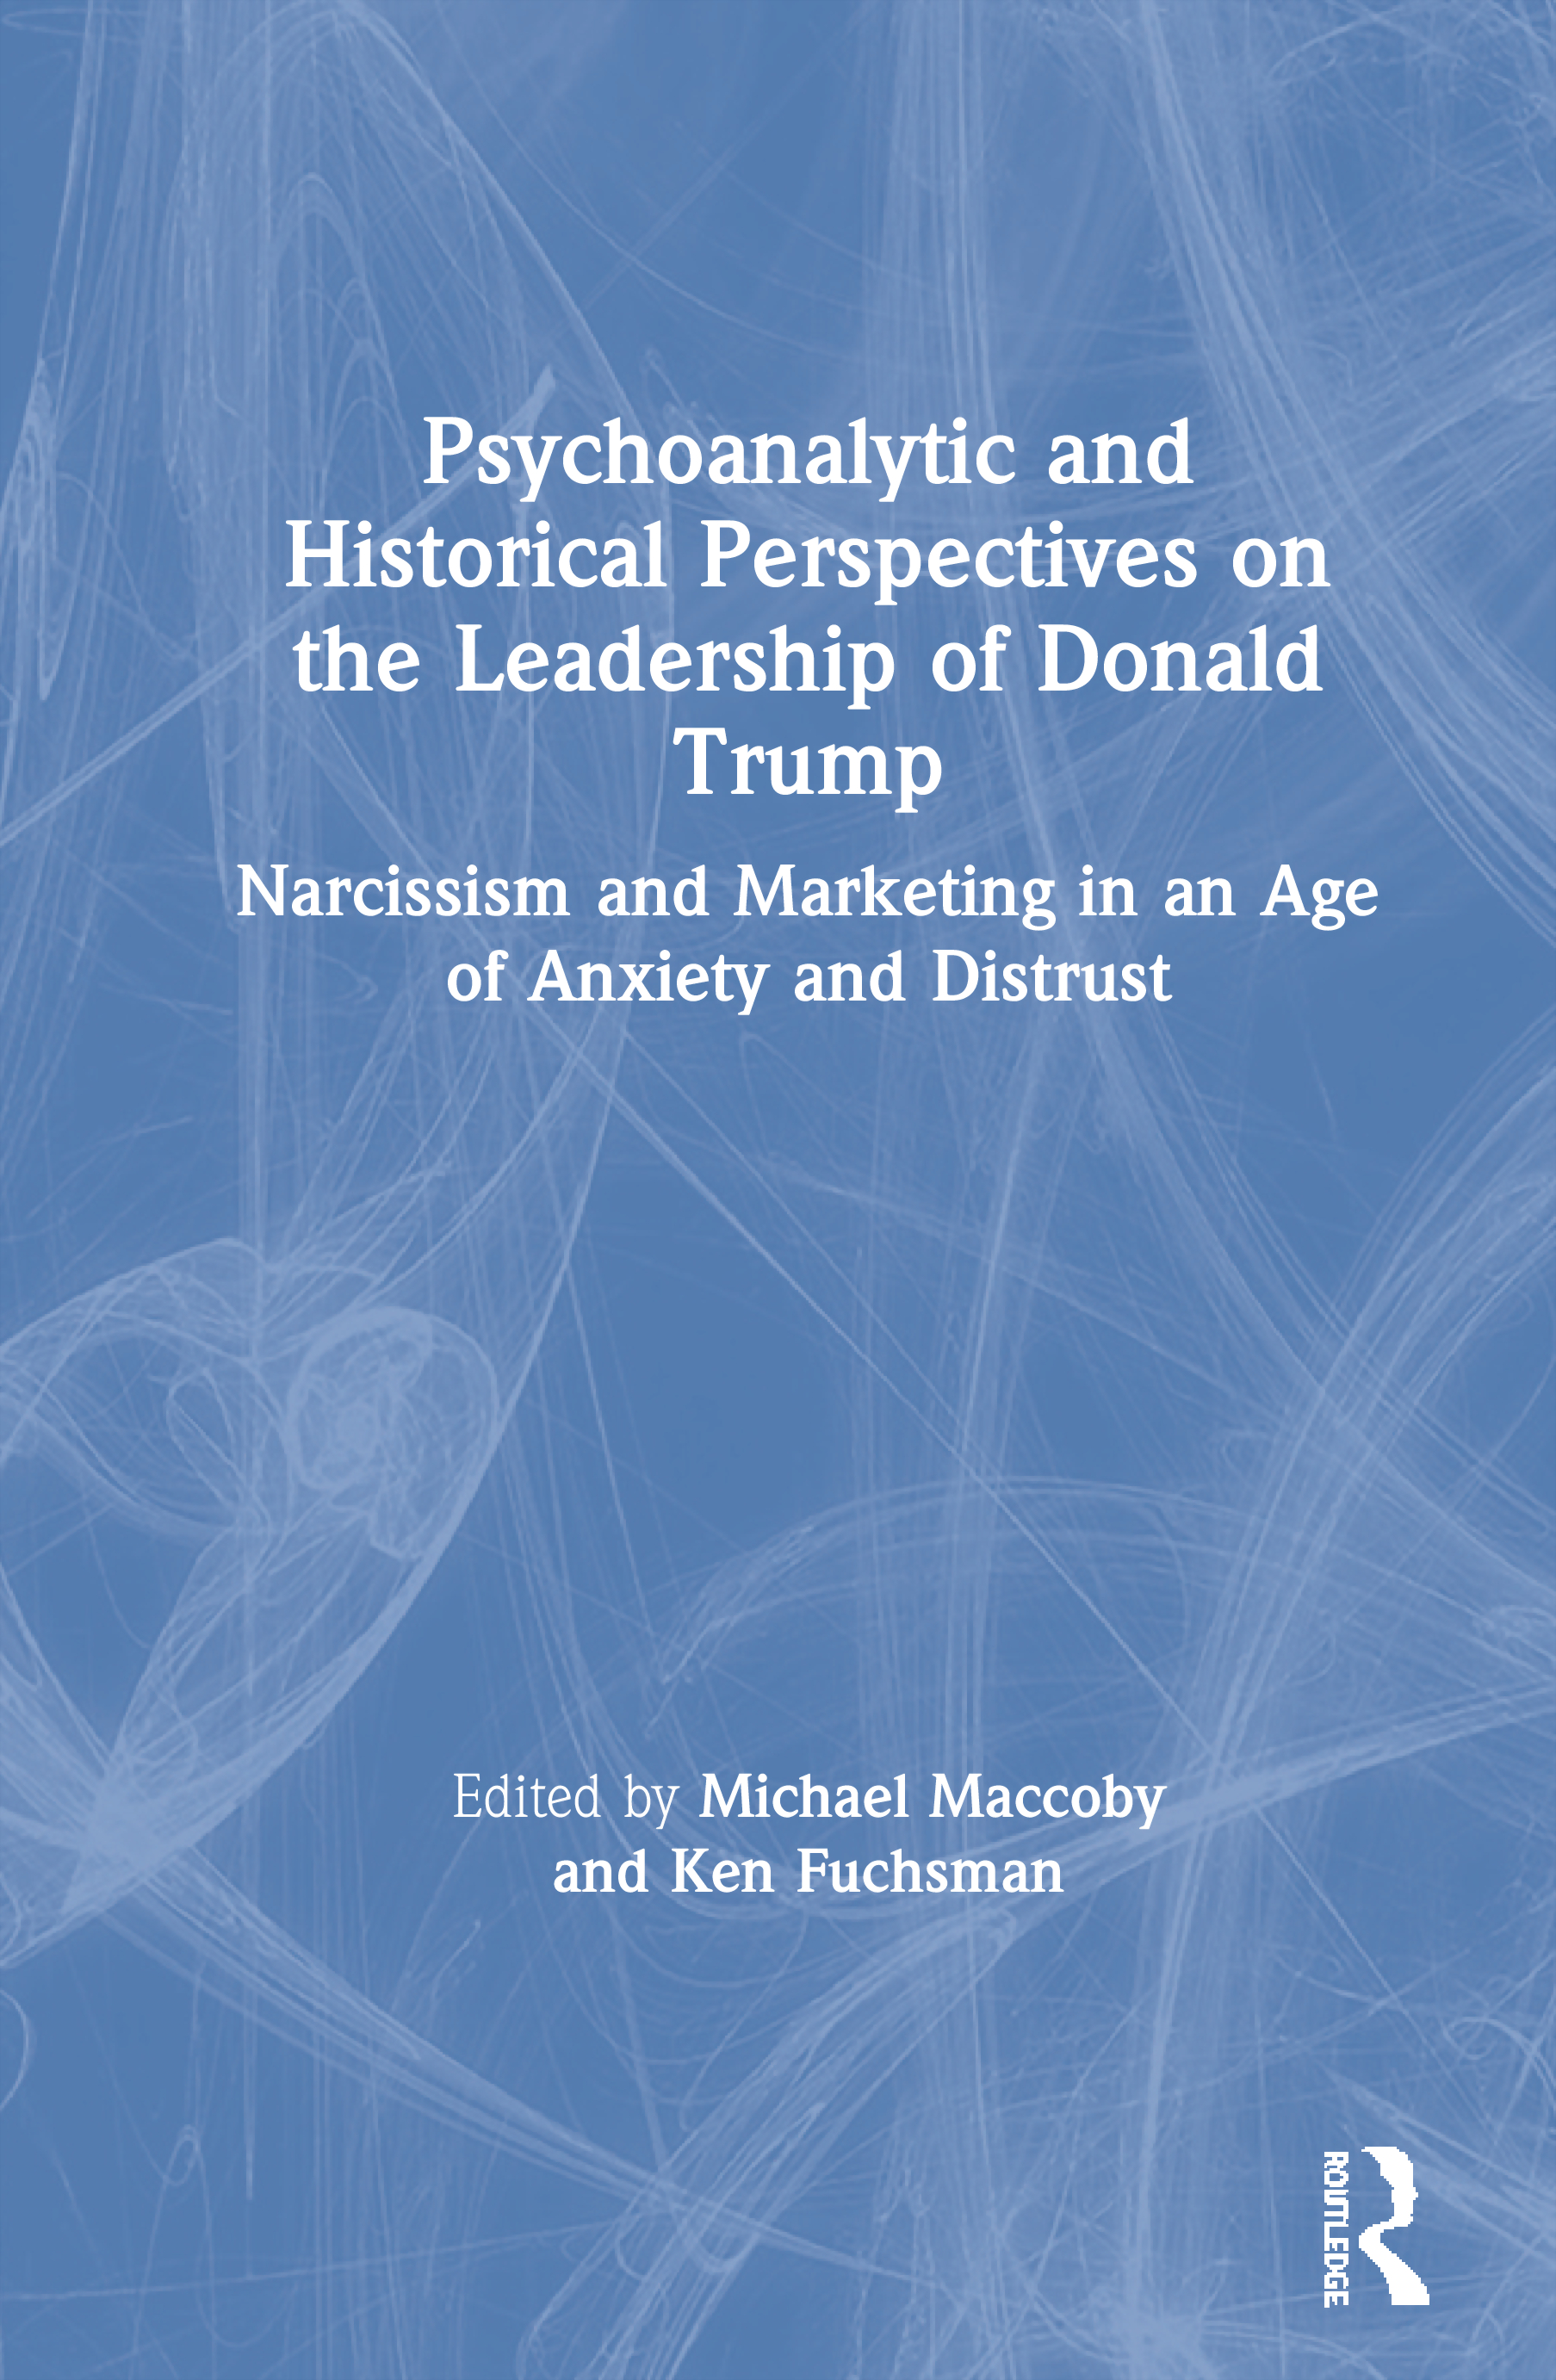 Psychoanalytic and Historical Perspectives on the Leadership of Donald Trump: Narcissism and Marketing in an Age of Anxiety and Distrust, 1st Edition (Paperback) book cover